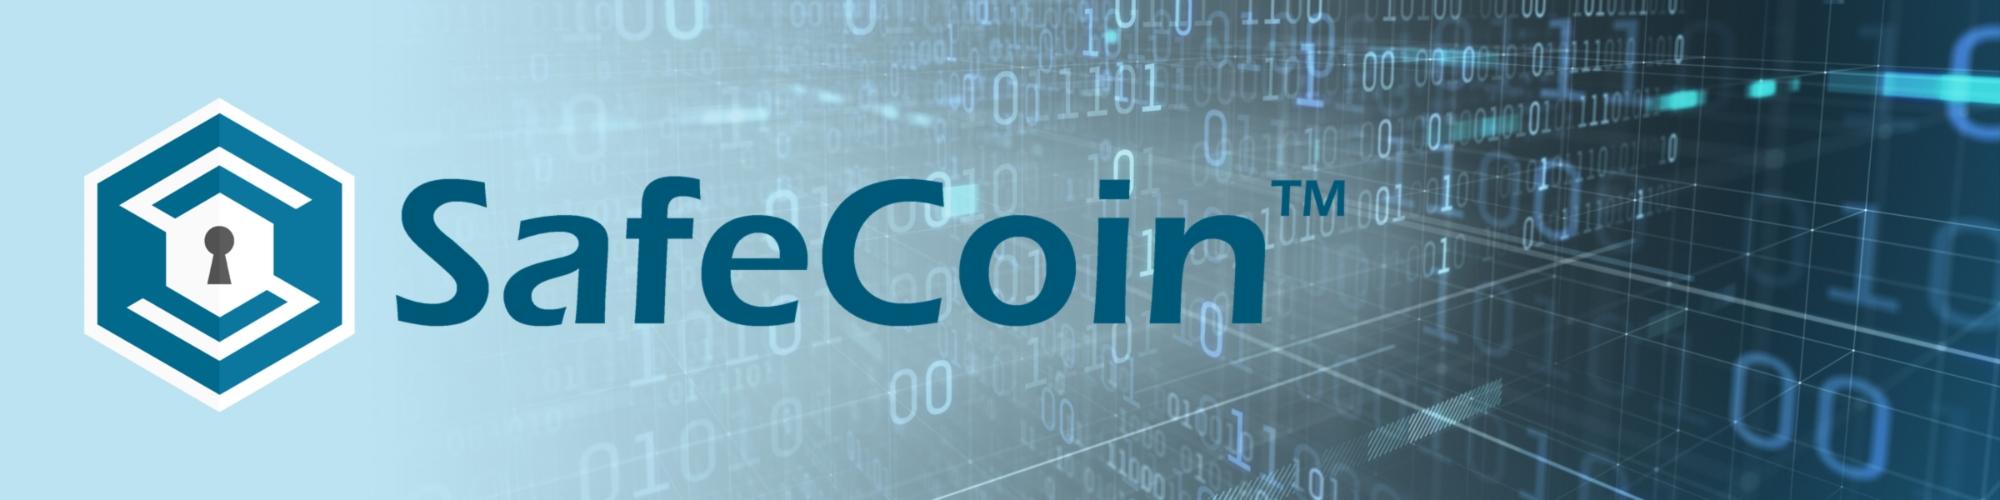 Showroom - safecoin